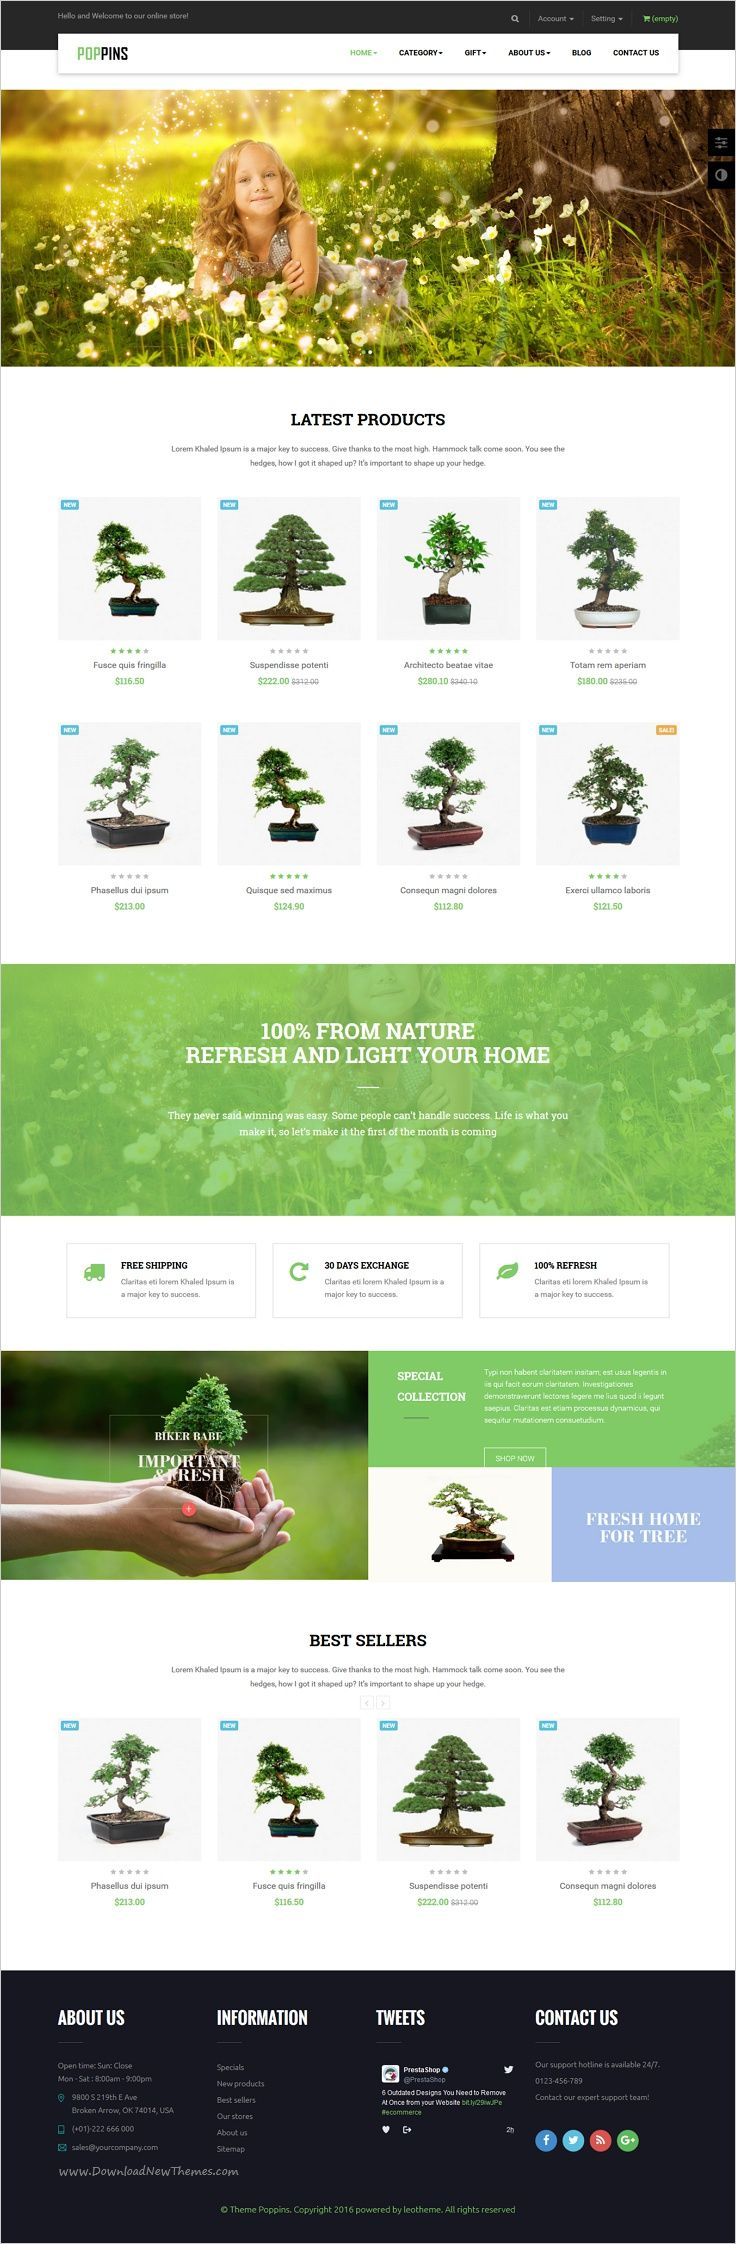 Leo poppins is a modern and elegant design #Prestashop theme for #bonsai #shop eCommerce website with 3 multipurpose unique homepage layouts download now➯ https://themeforest.net/item/leo-poppins-ressponsive-prestashop-theme/17116358?ref=Datasata